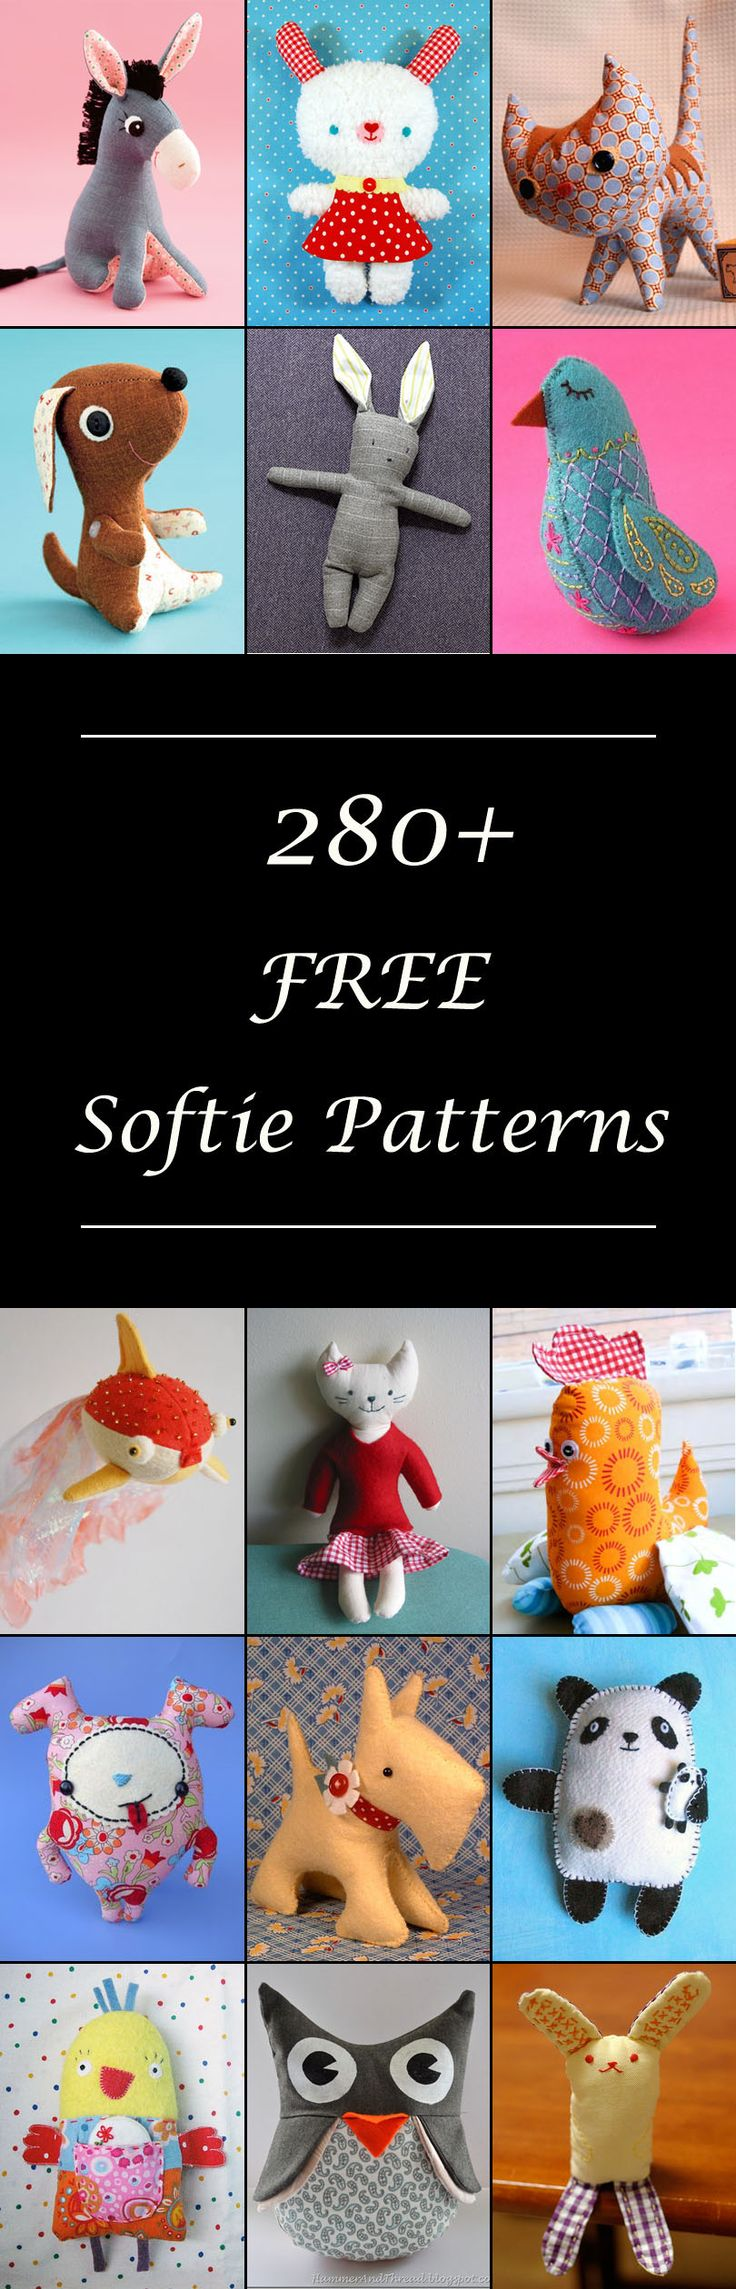 Lots of adorable free stuffed animal & softie patterns